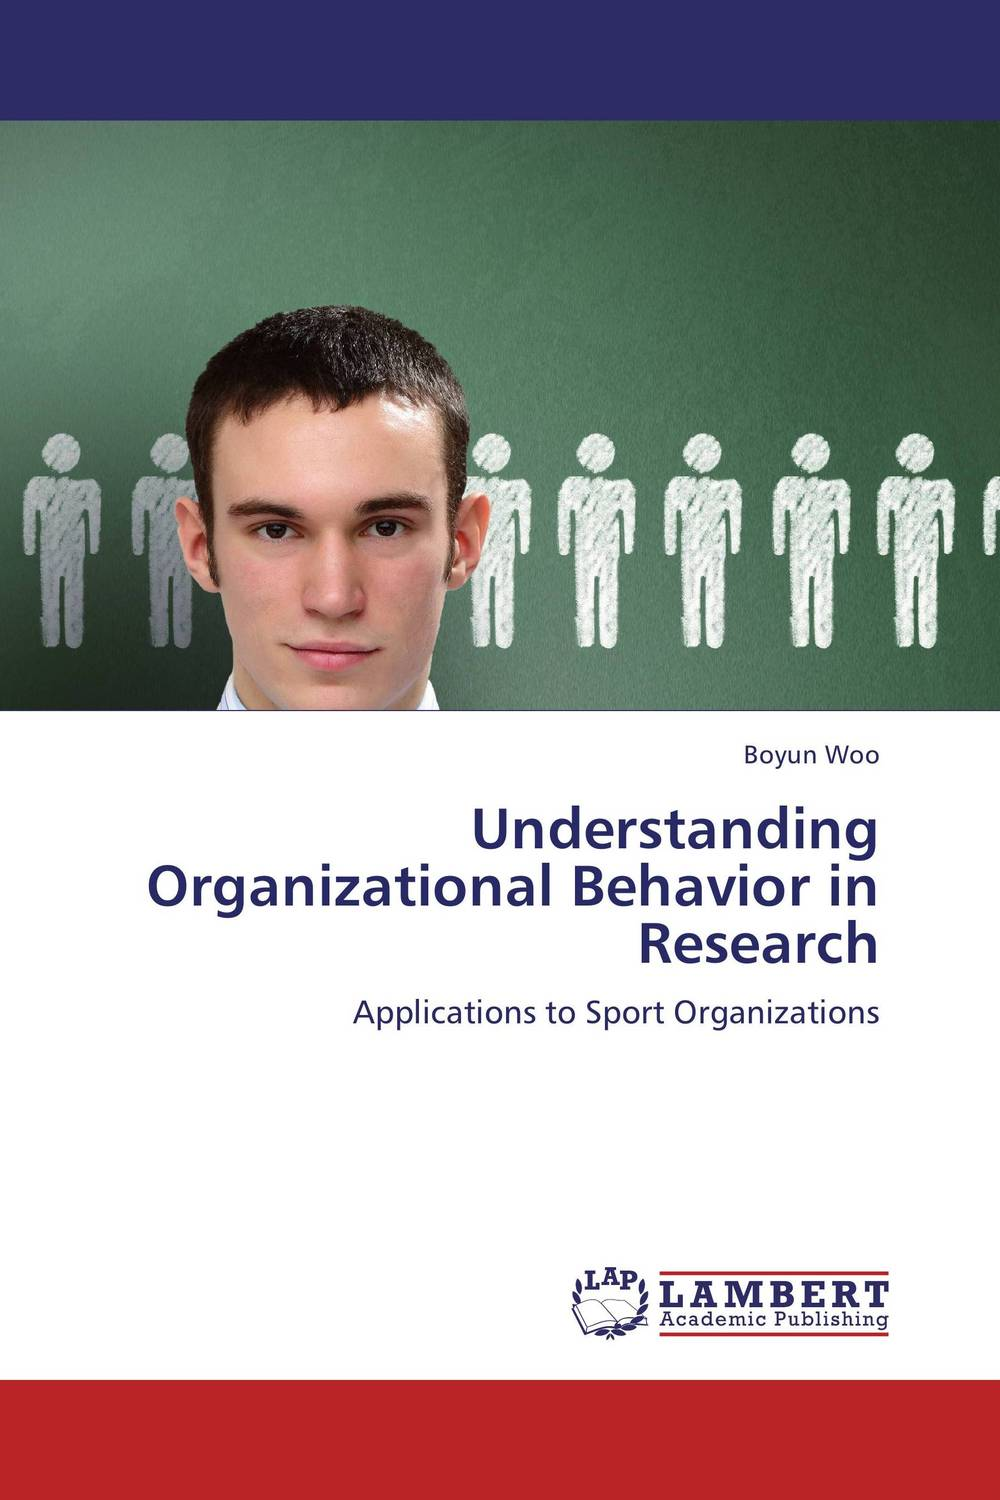 Understanding Organizational Behavior in Research muhammad hashim an easy approach to understand organizational behavior